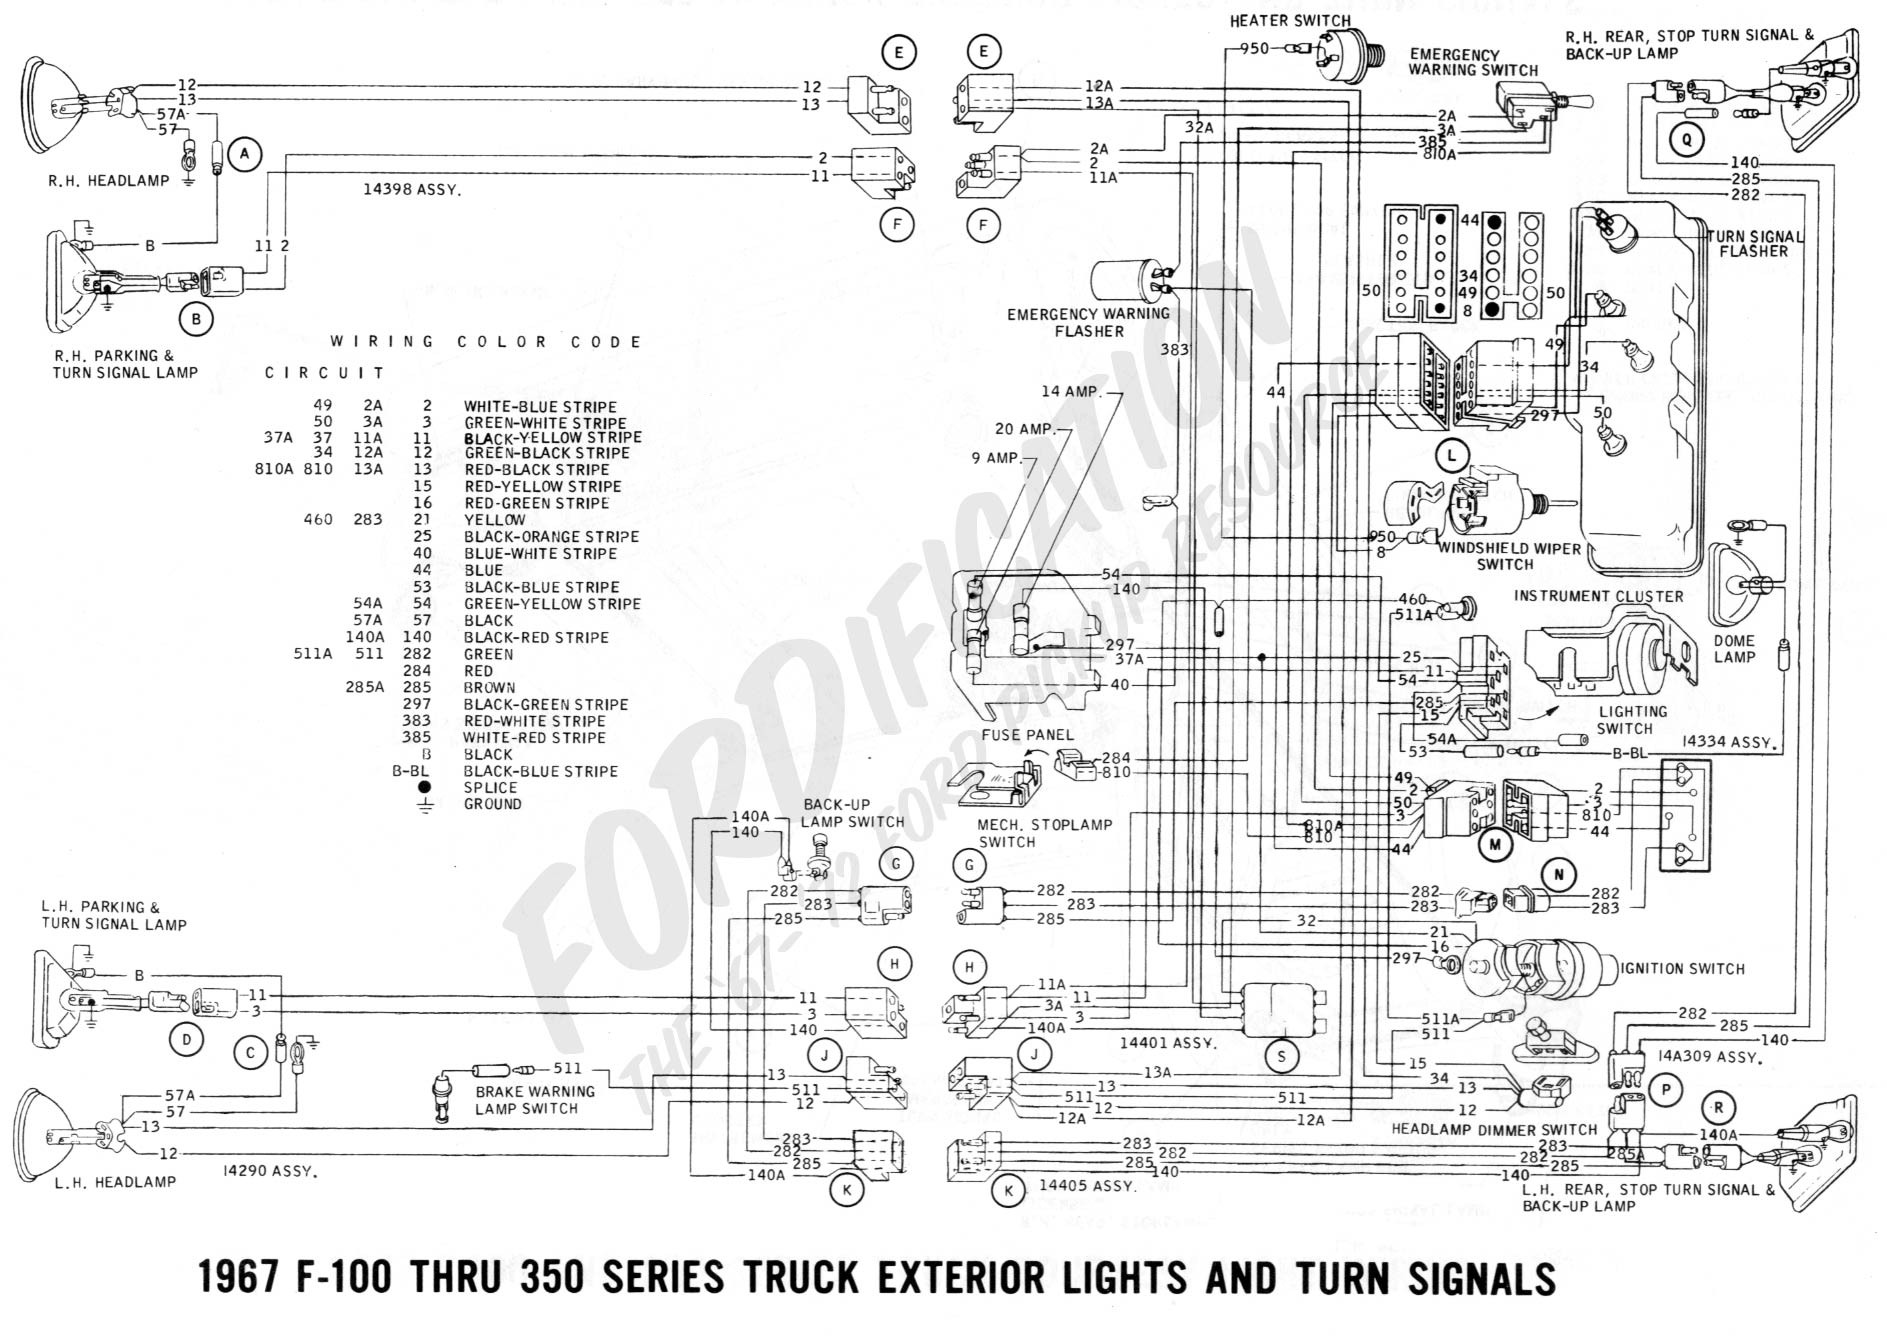 65 Mustang Tail Light Wiring Diagram Schematic Library Alt 1971 Ford F100 Diagrams Rh Ogmconsulting Co 1968 Alternator